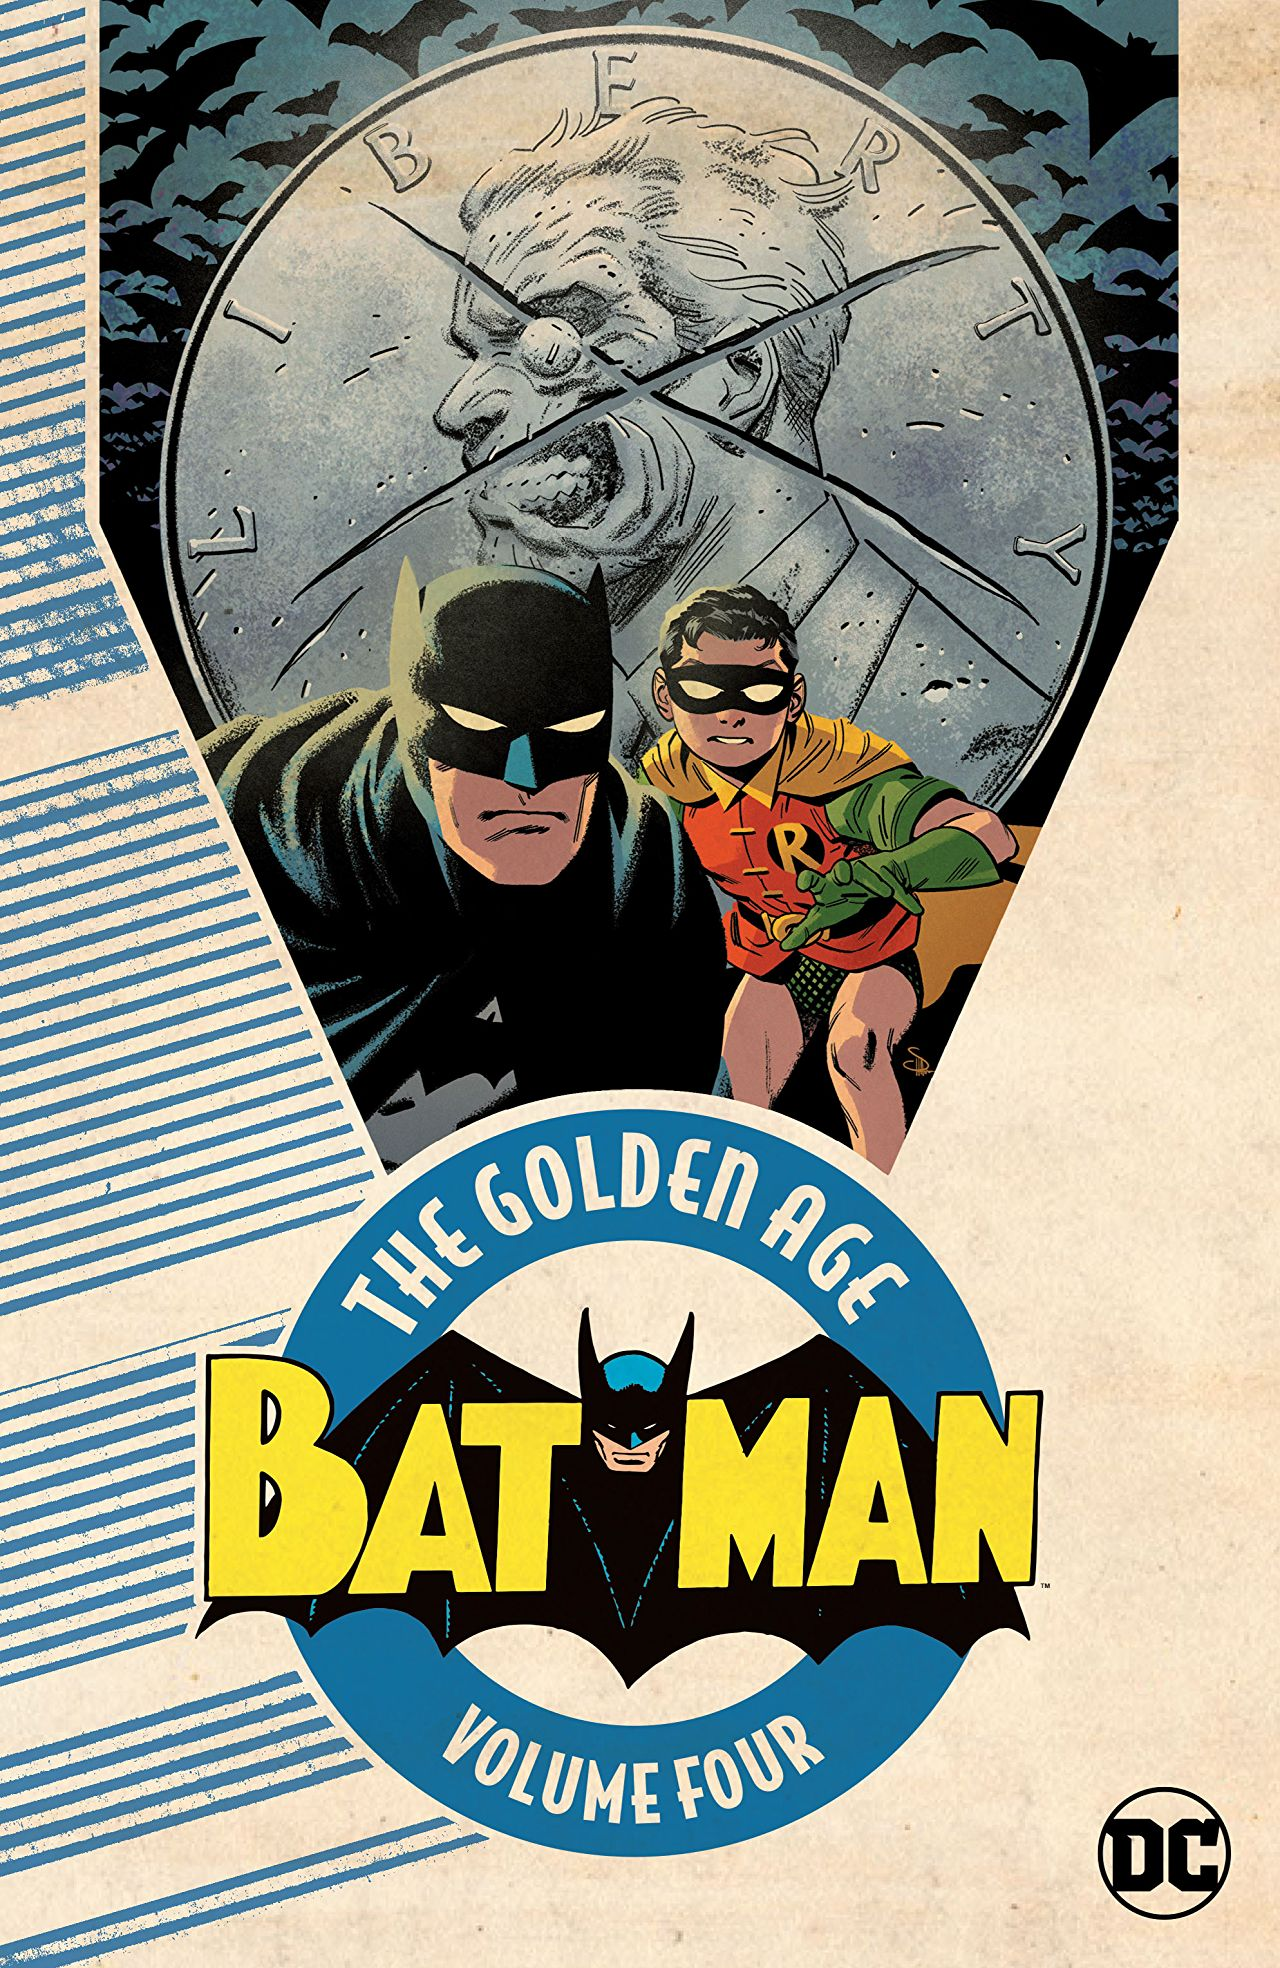 Batman: The Golden Age Vol. 4 (Collected)